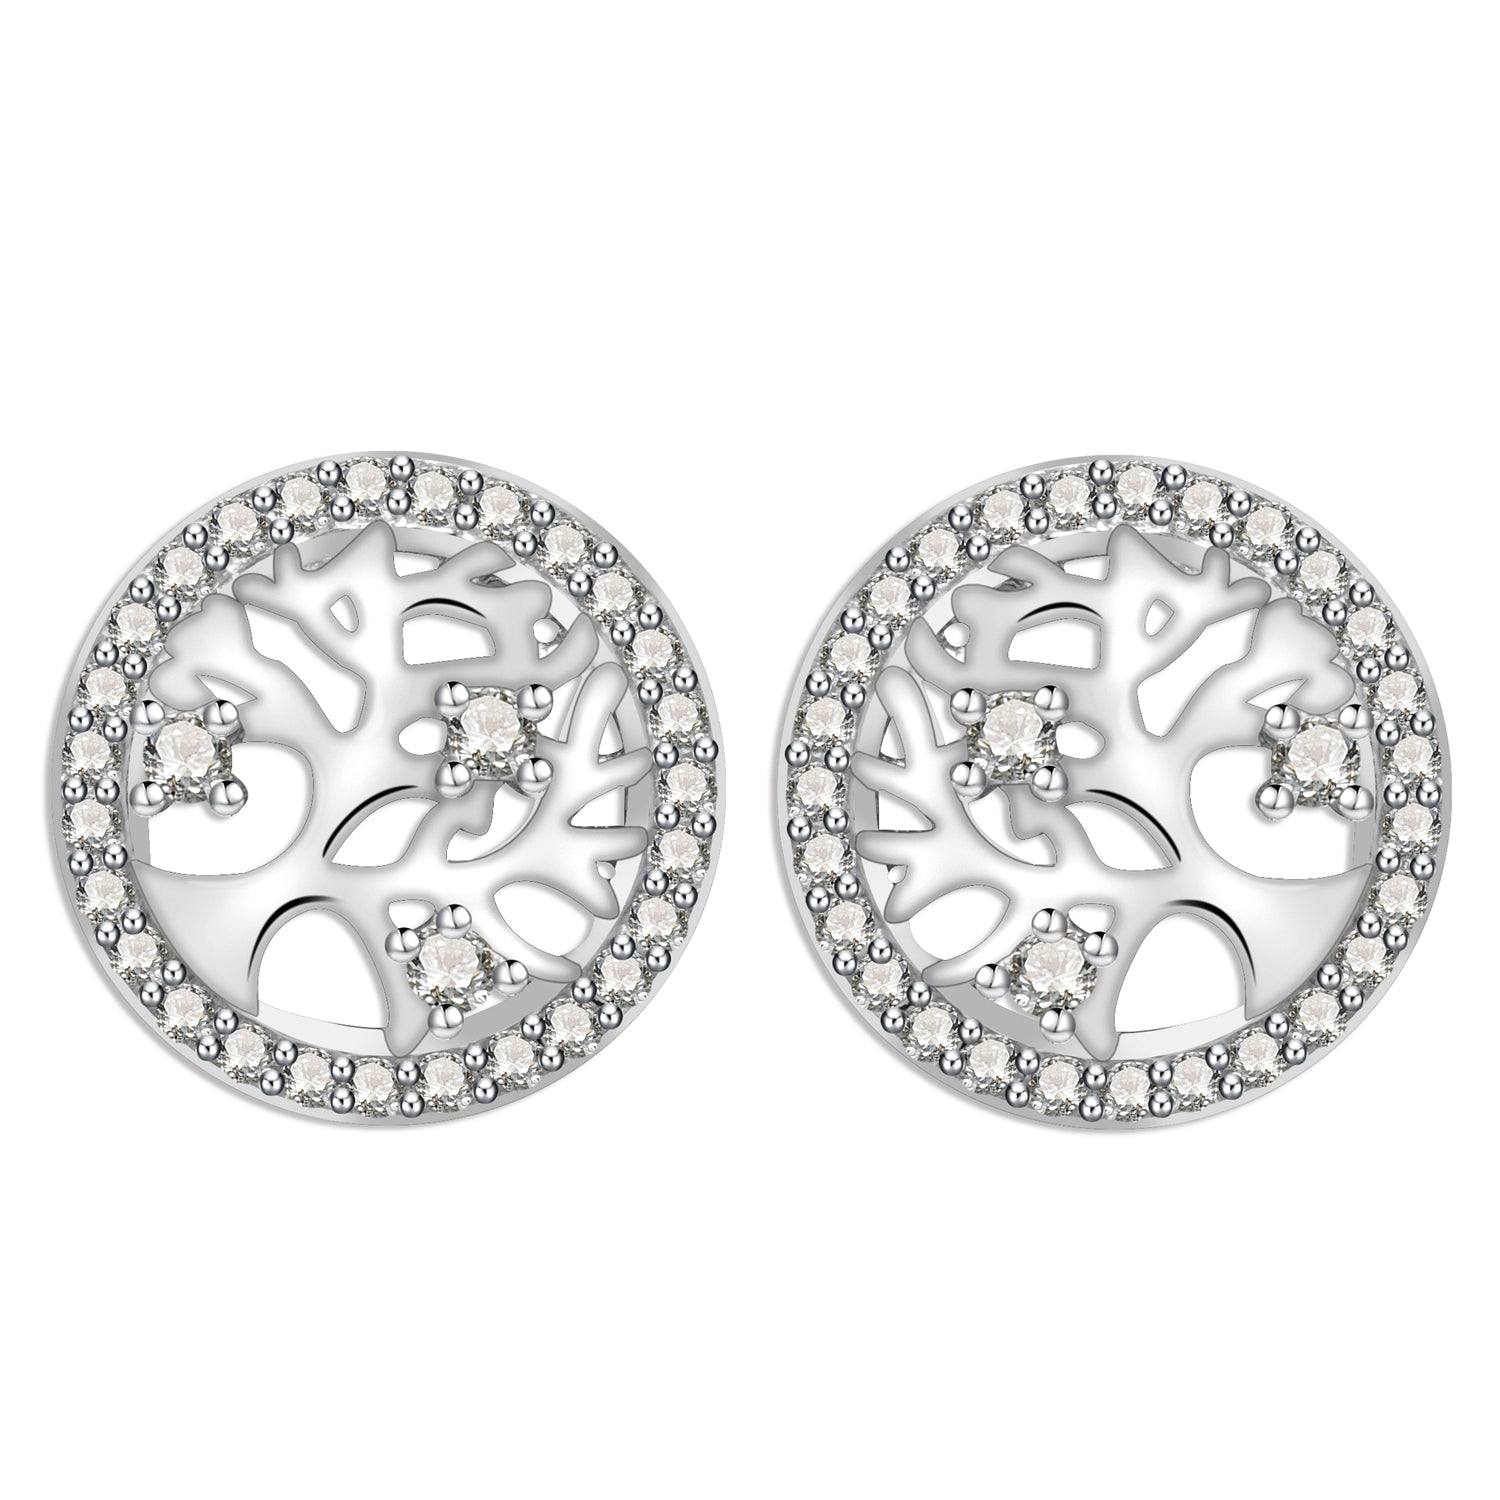 Maeve Sterling Silver Earrings